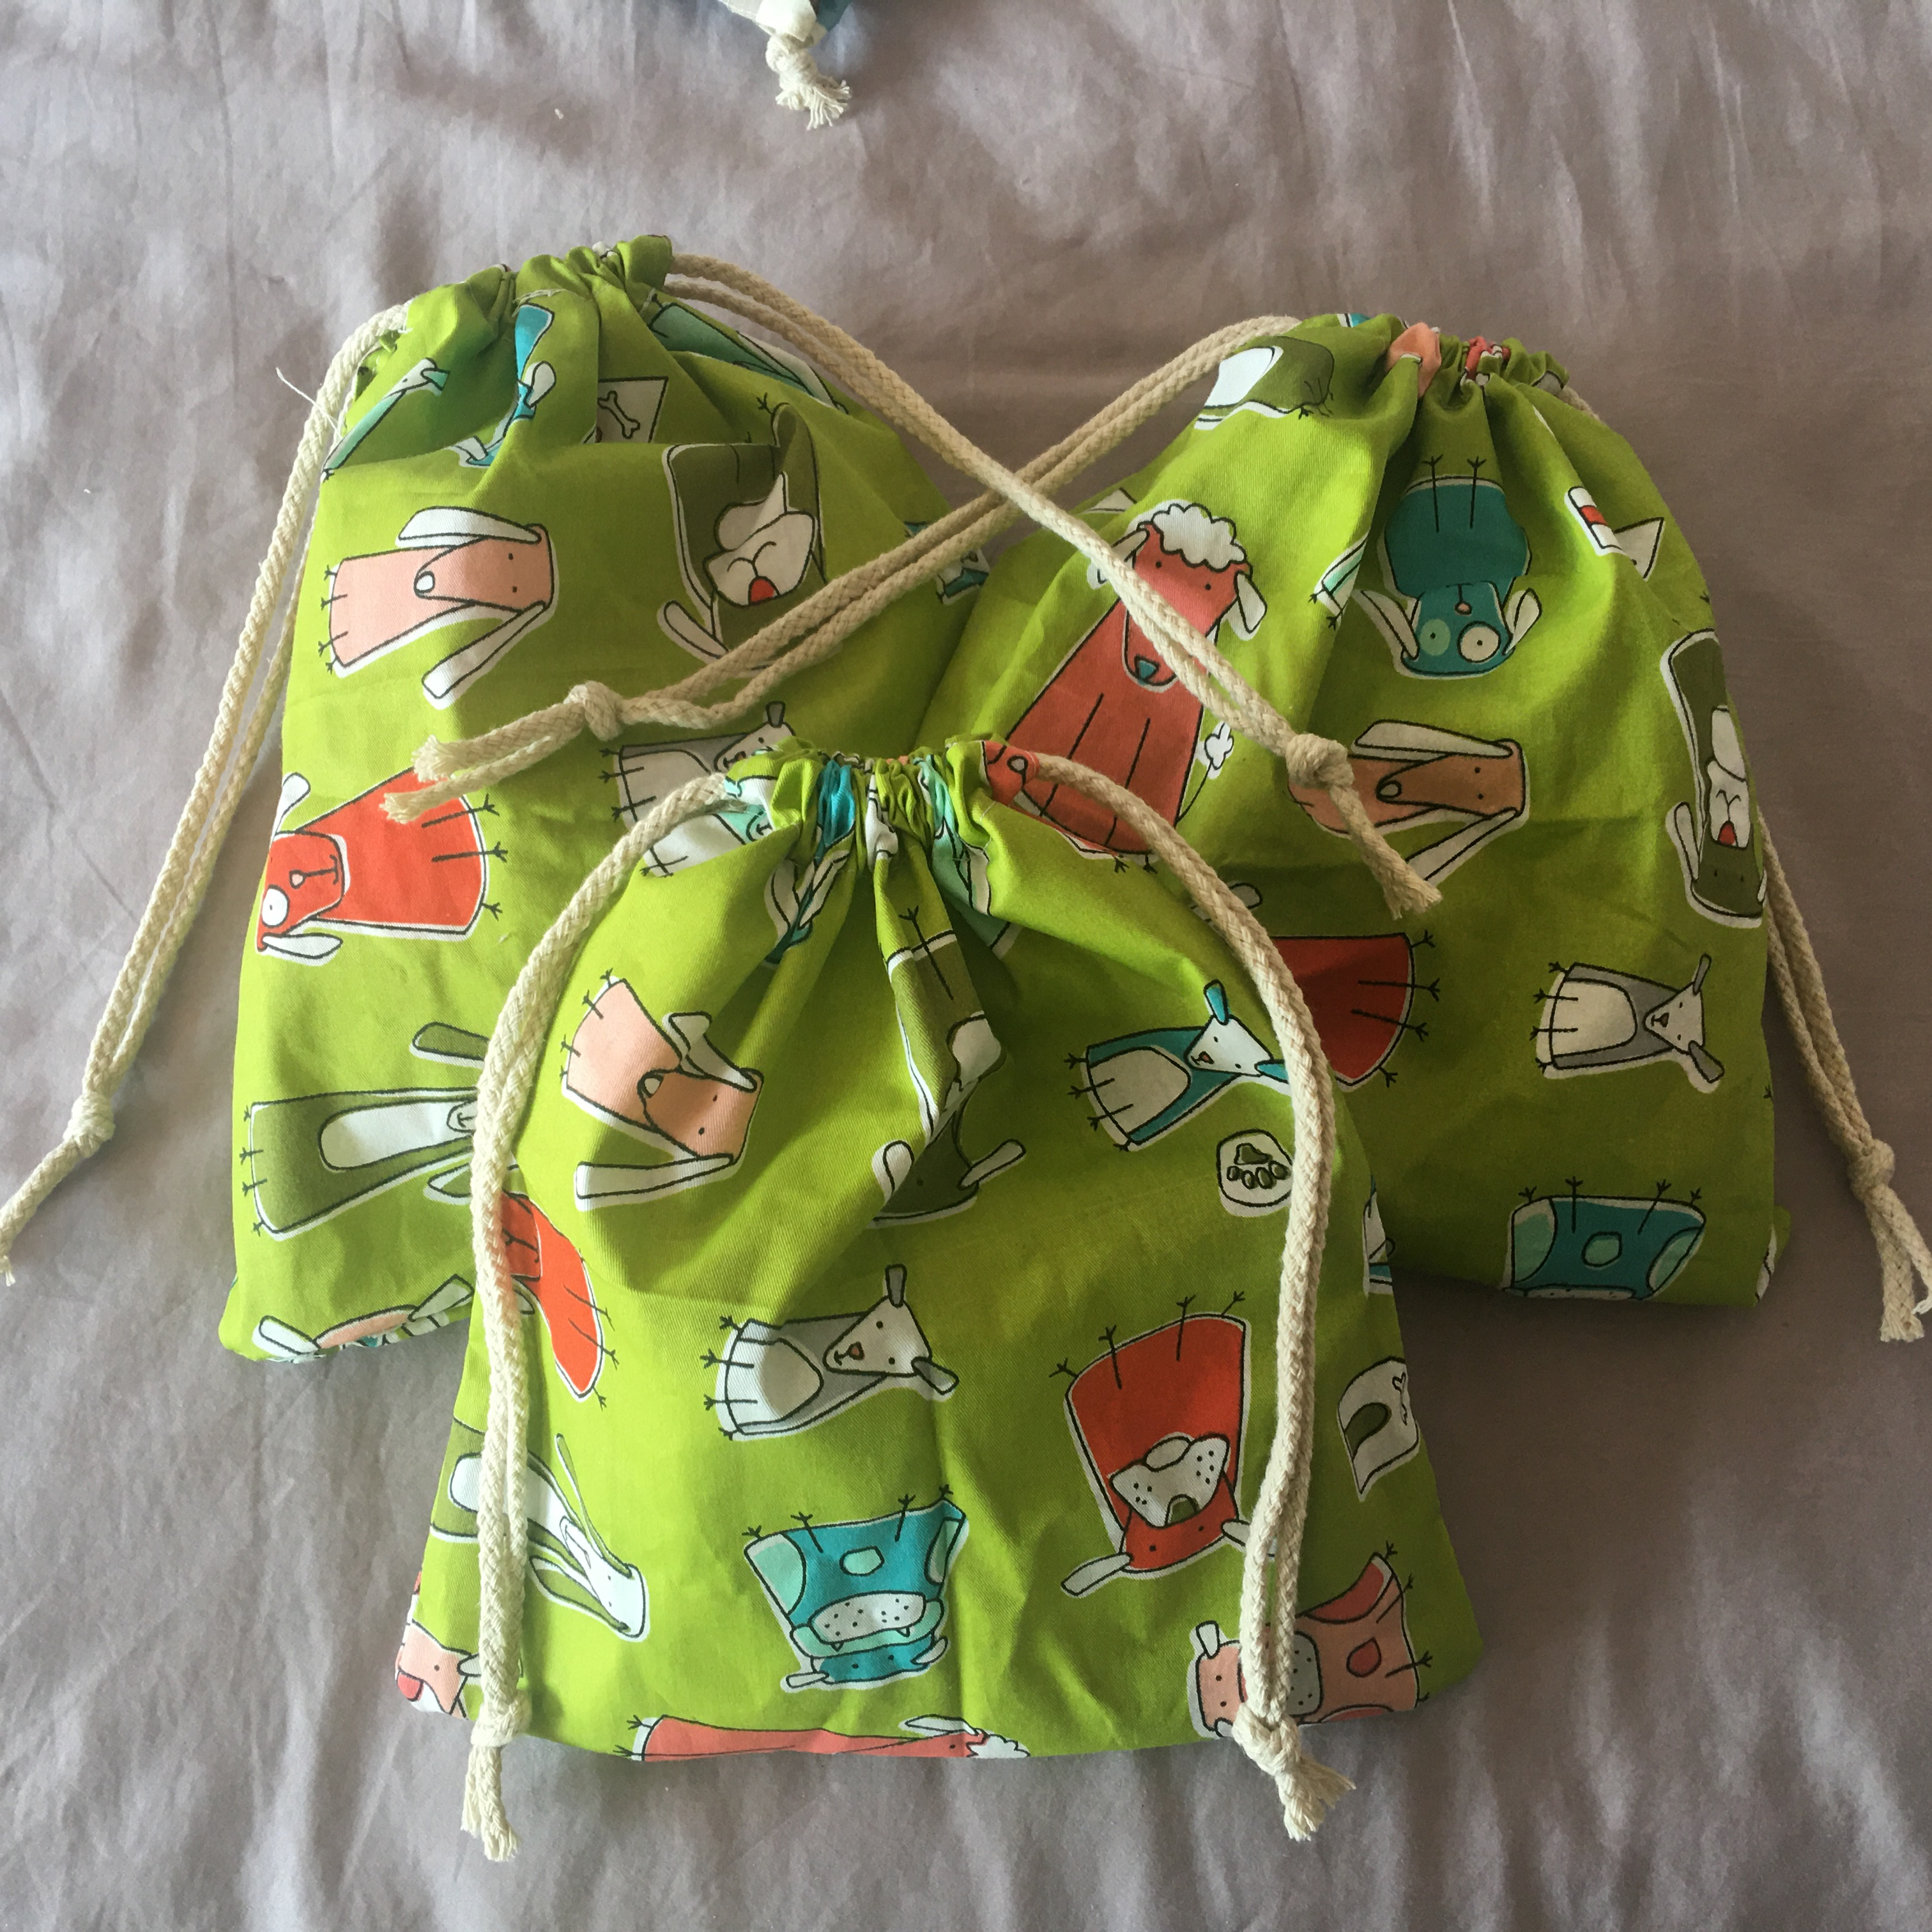 1pc Cotton Twill Drawstring Eco Organized Pouch Party Gift Bag Print Animal Green Base YL320a